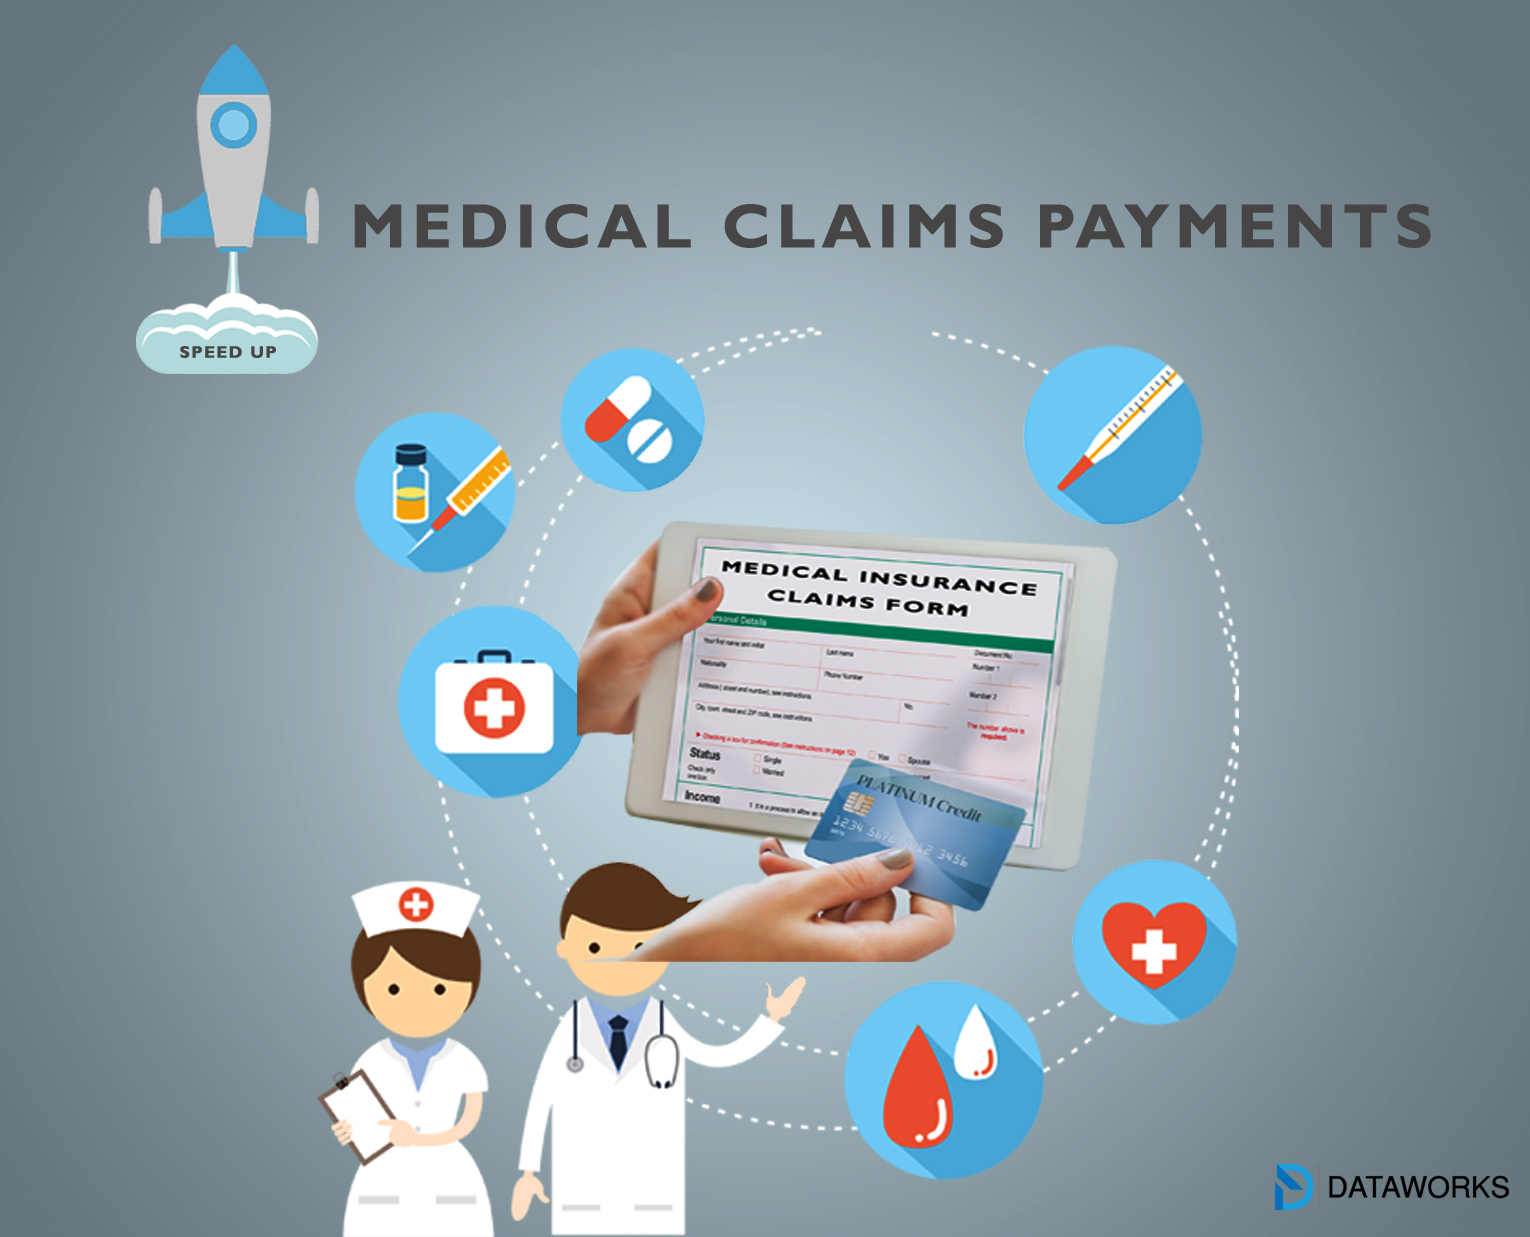 Tips to Speed Up Medical Claims Payments